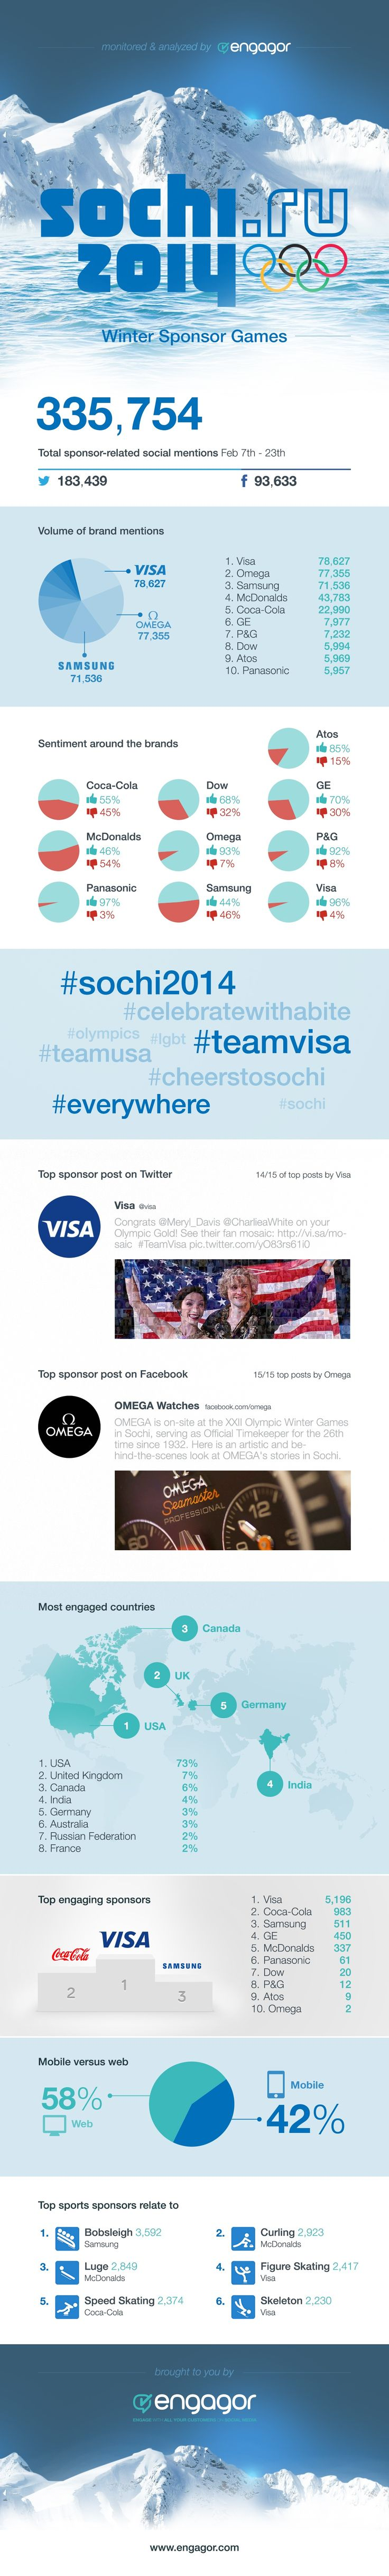 Visa Wins Sponsorship Engagement Gold Medal At 2014 Winter Olympic Games